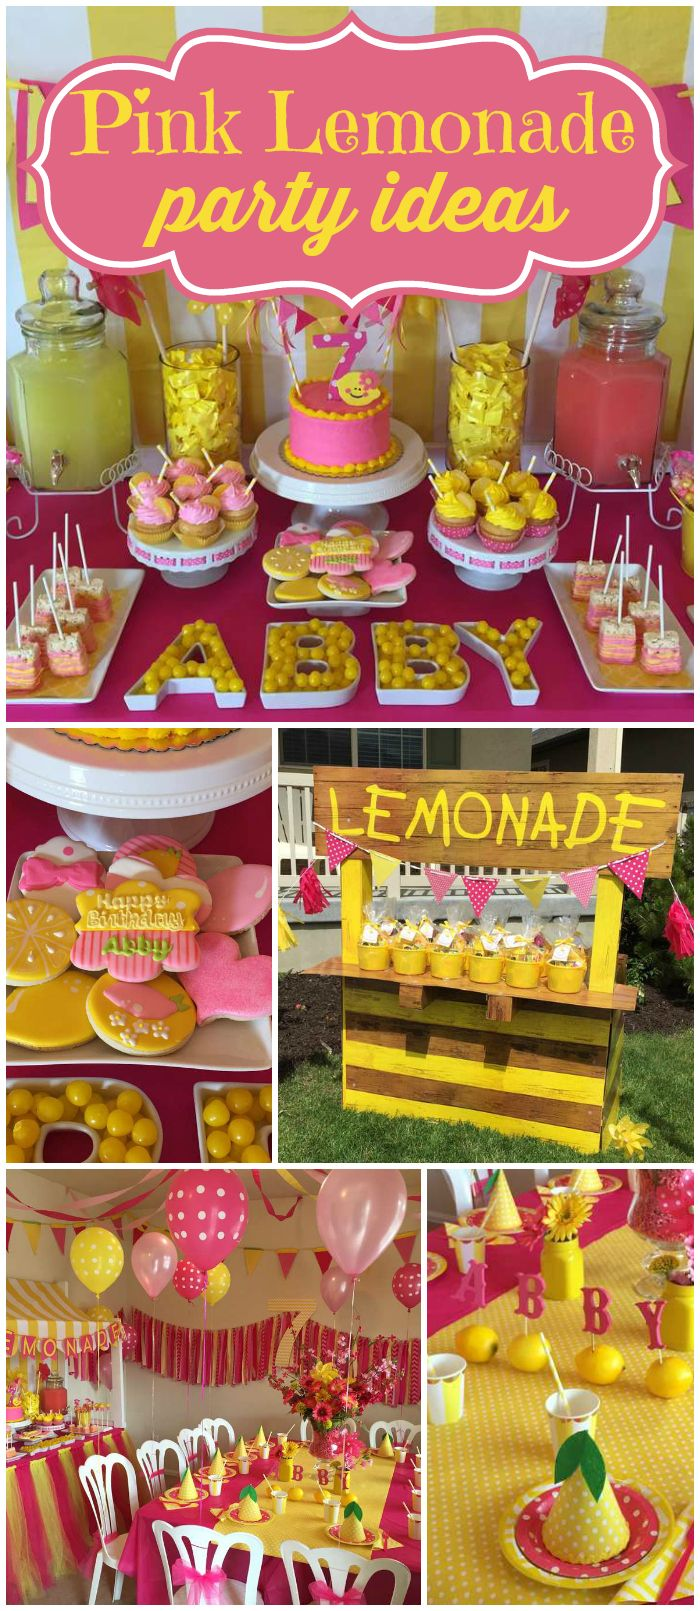 Lemonade Lemons Birthday Abbys Lemonade Stand Party